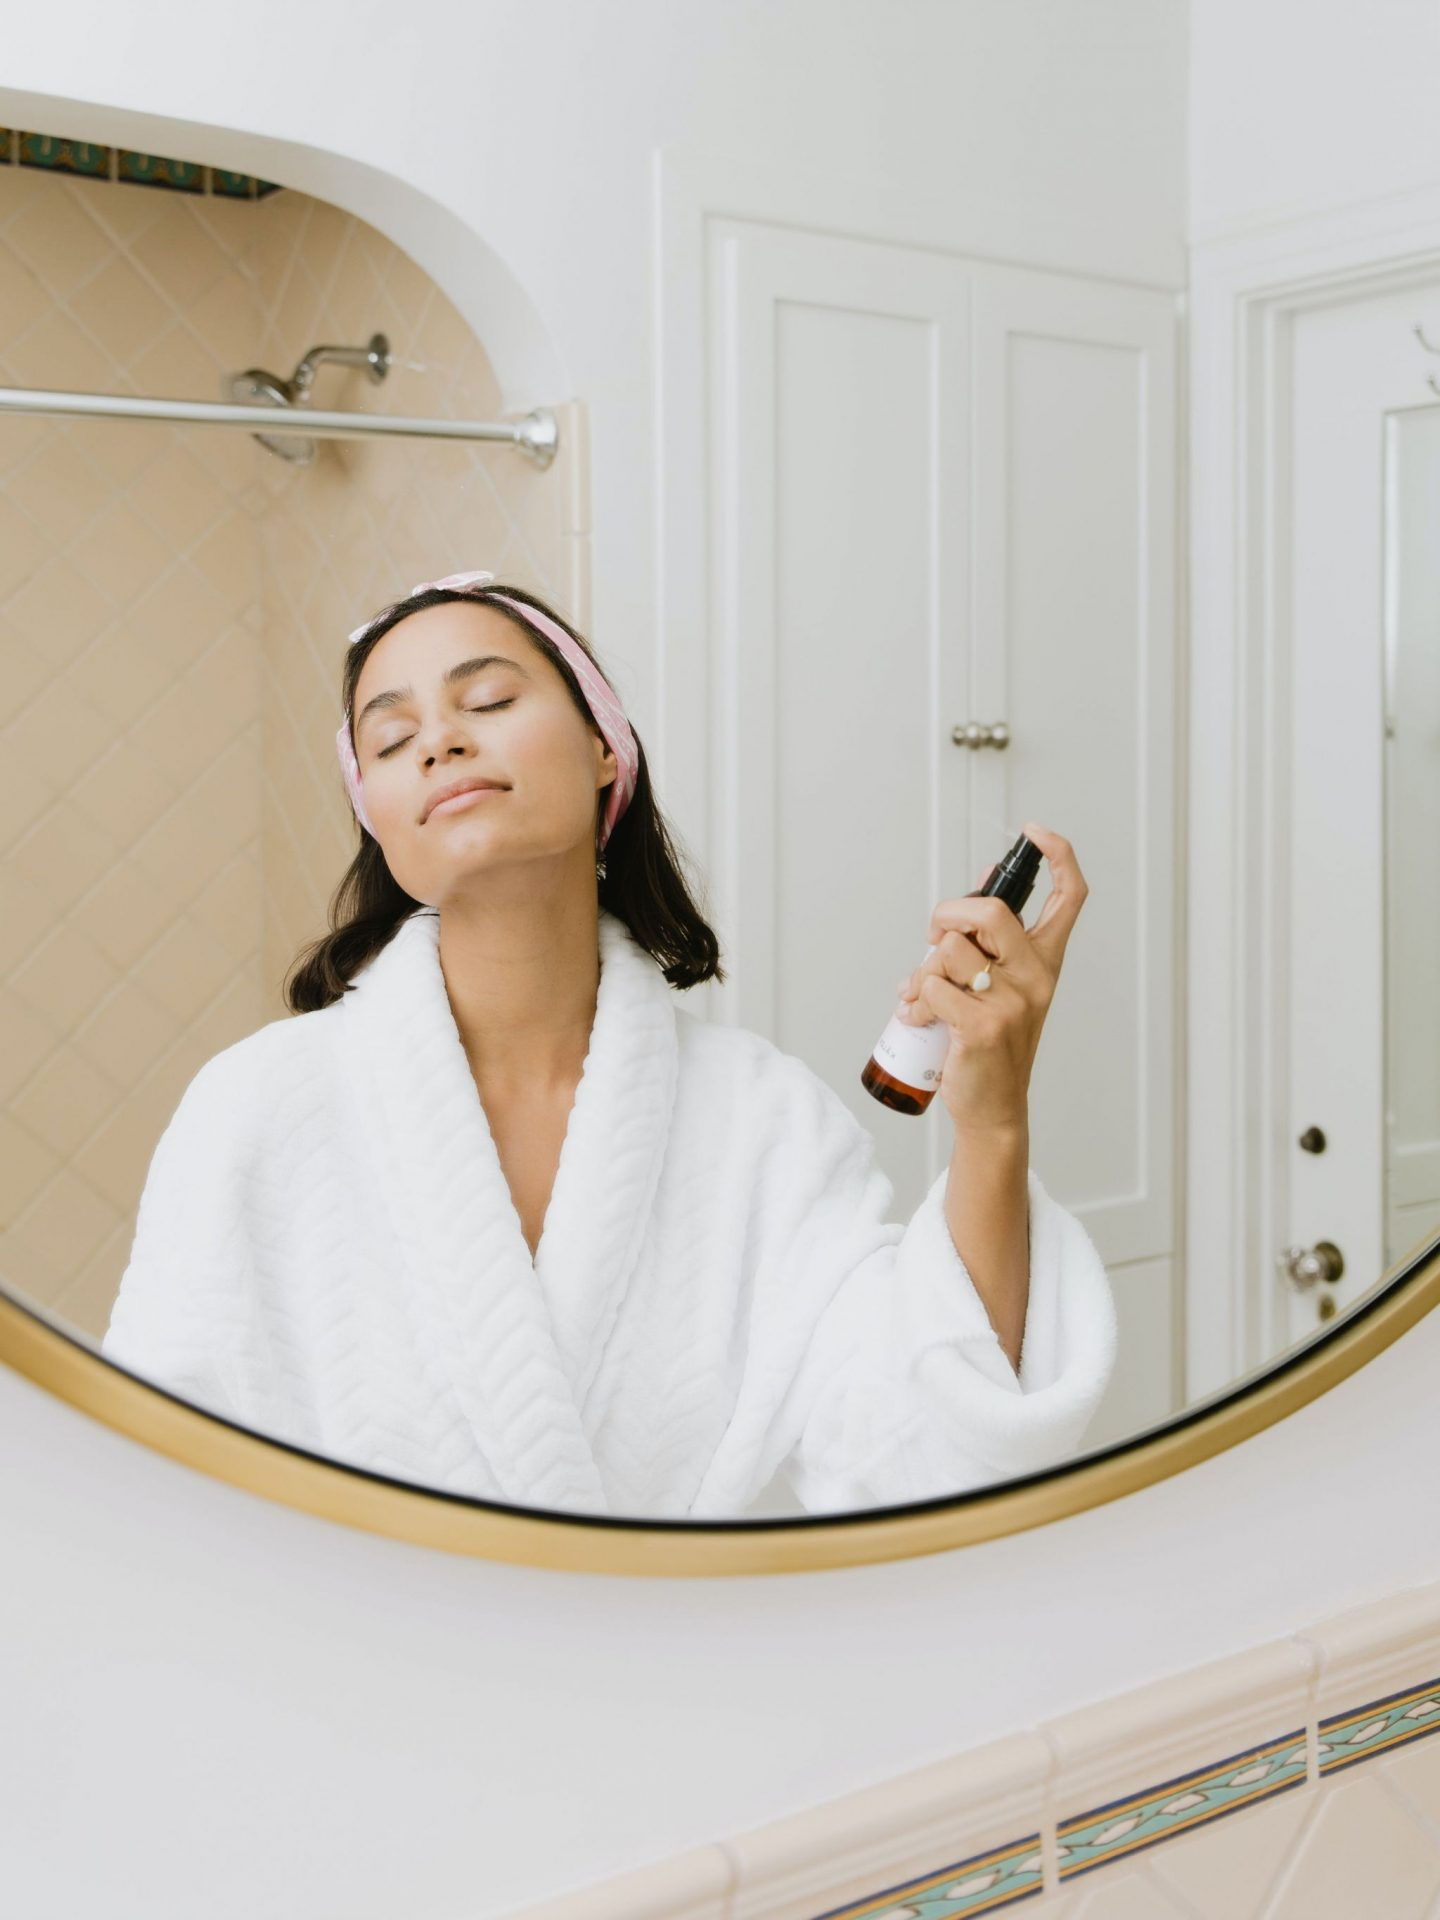 19 WAYS TO BANISH EXTREMELY DRY SKIN IN 2021